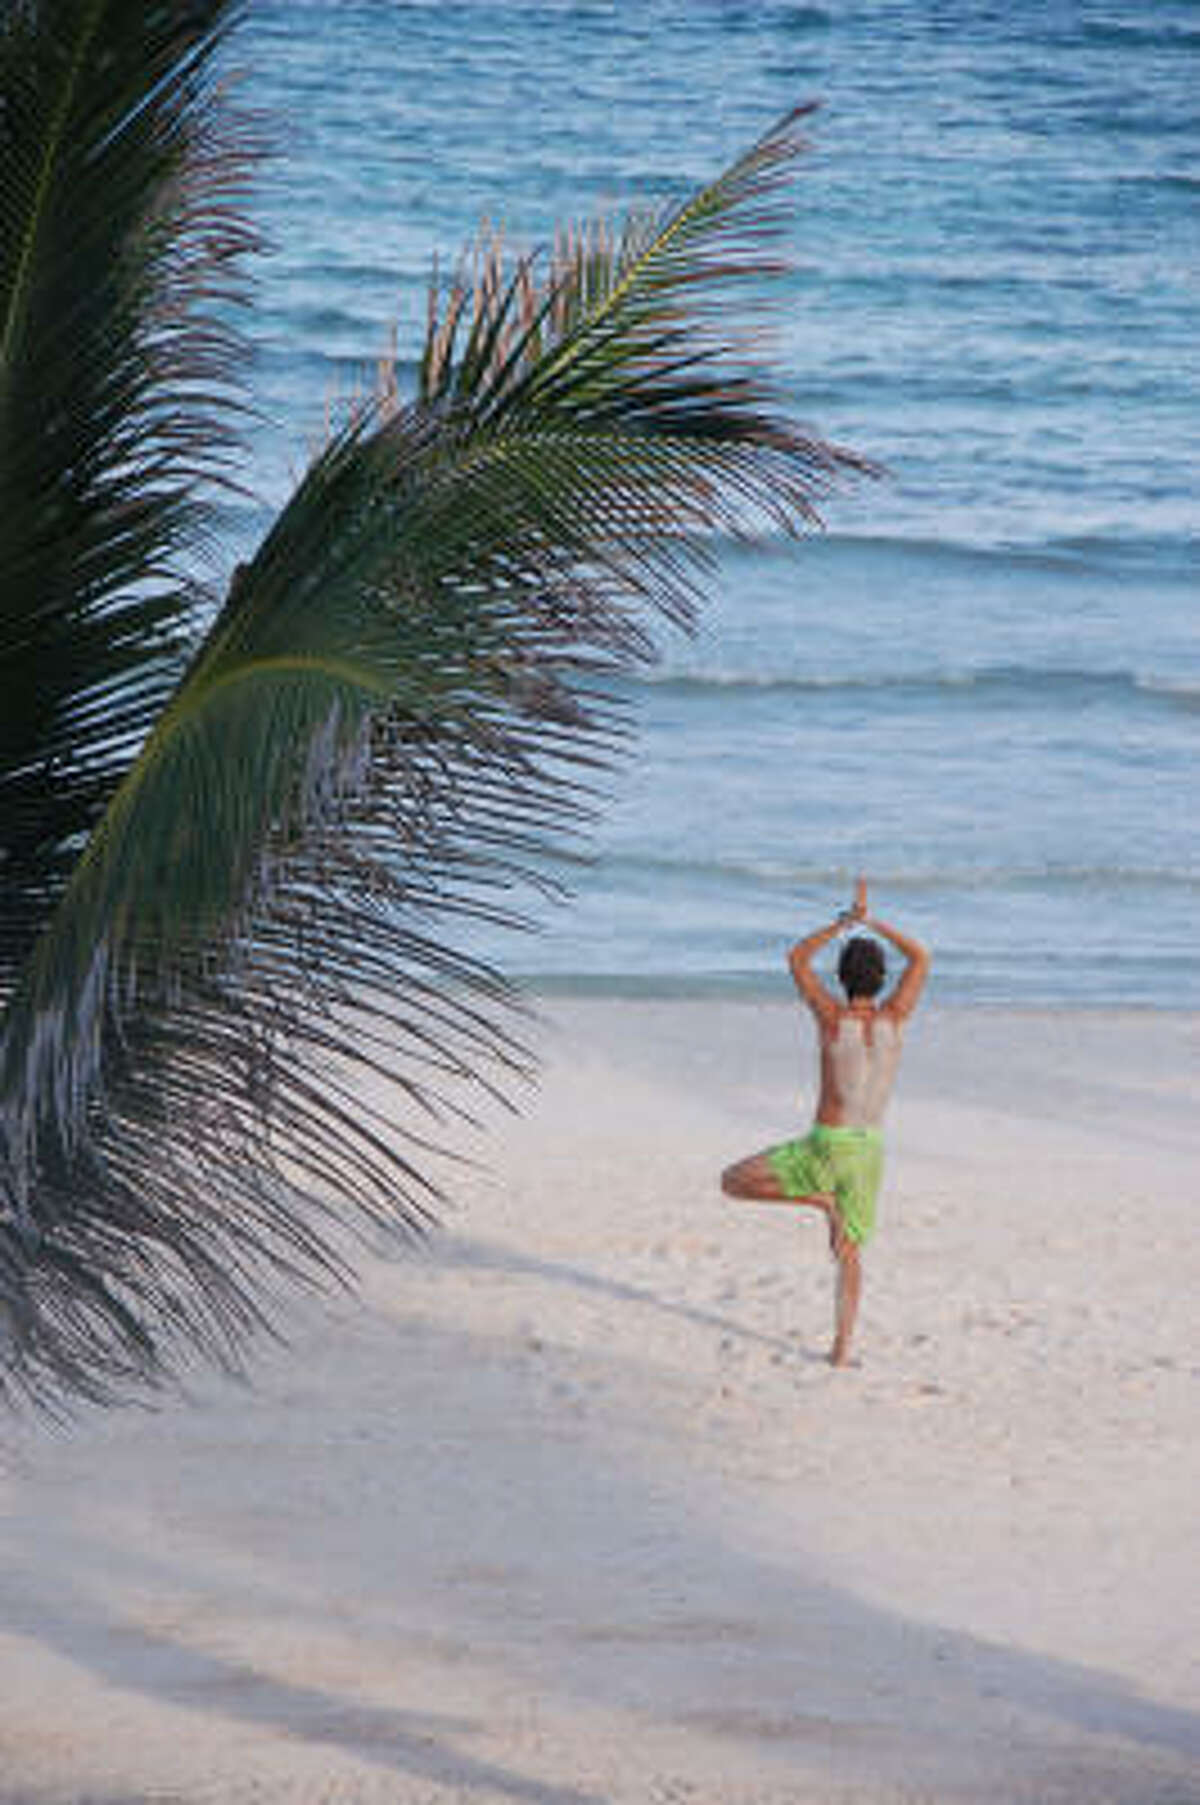 A beach-goer takes a relaxing stance at the Grand Velas All Suites Spa and Resort on the Riviera Maya. Read more about the sights of the Yucatan.